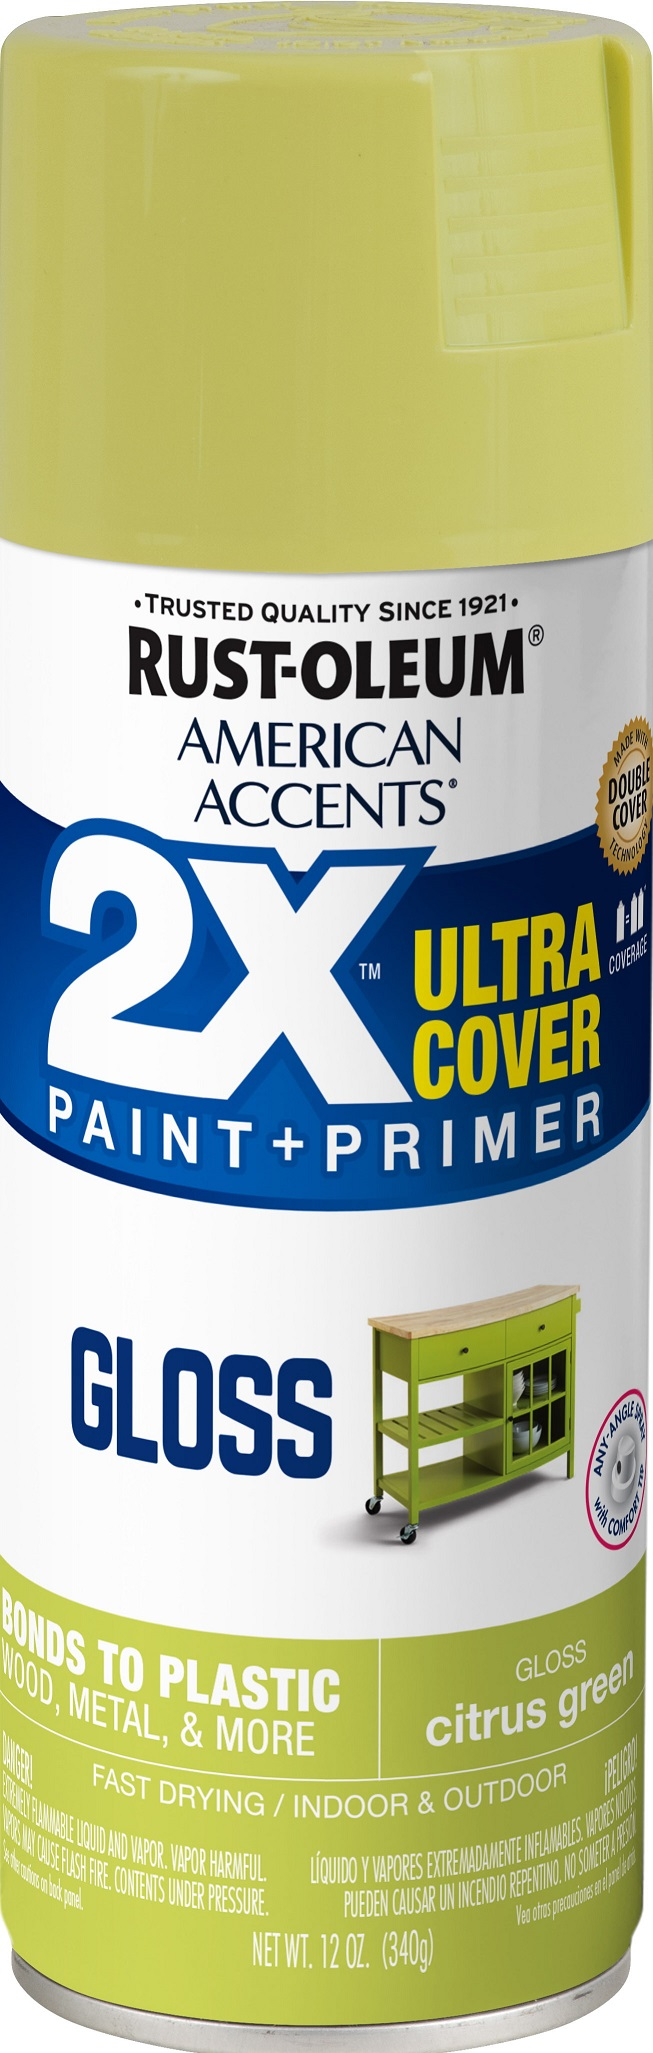 (3 Pack) Rust-Oleum American Accents Ultra Cover 2X Gloss Citrus Green Spray Paint and Primer in 1, 12 oz